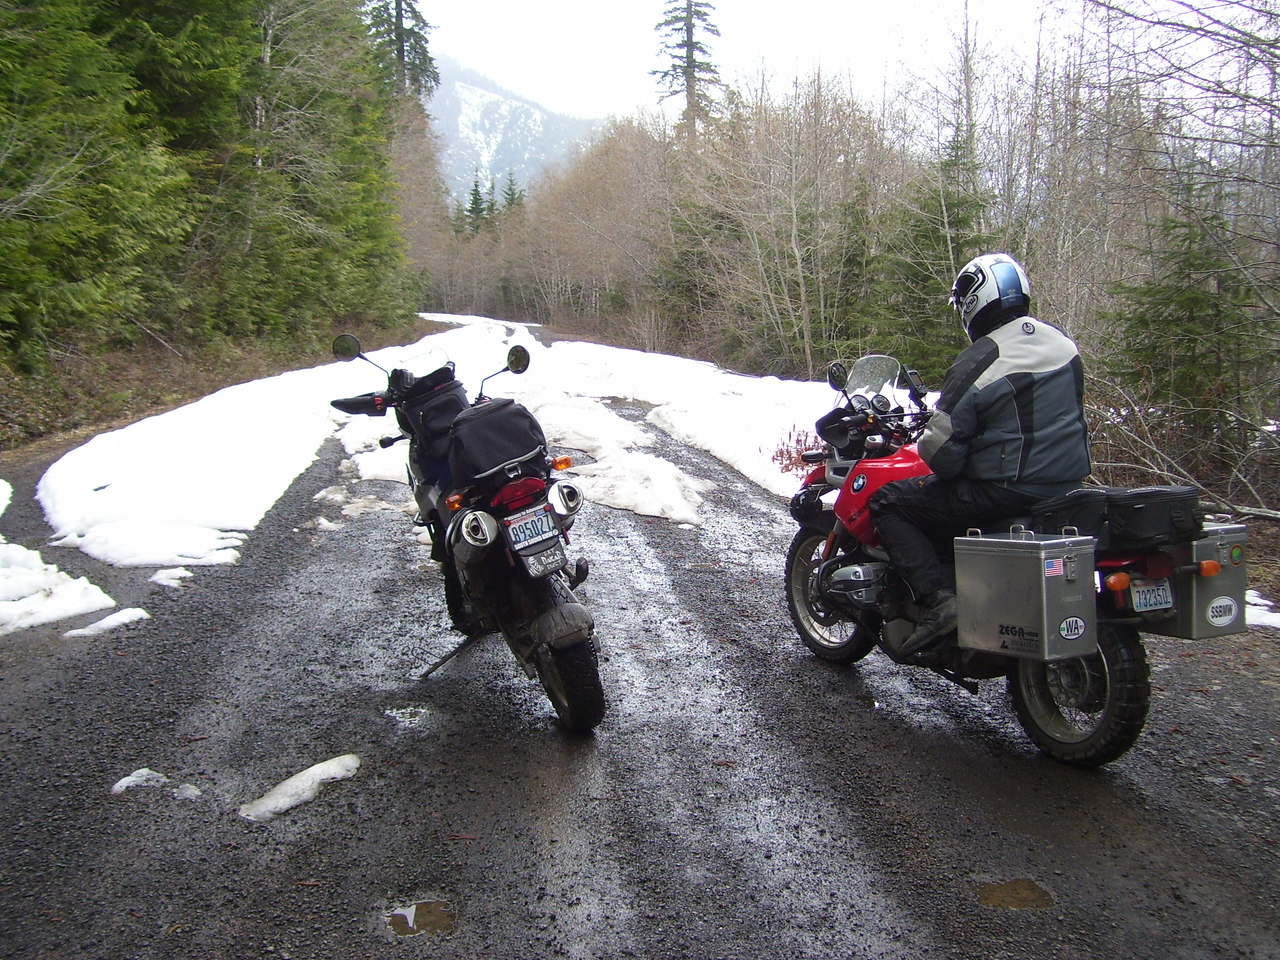 """Thursday, Dorian & I were out scouting for the """"Shelton Rally"""". We hit snow everywhere we went at about 1100' elevation. I had 160 miles on the Dakar odometer at the end of the day. Thank god for Gerbing heated gear."""